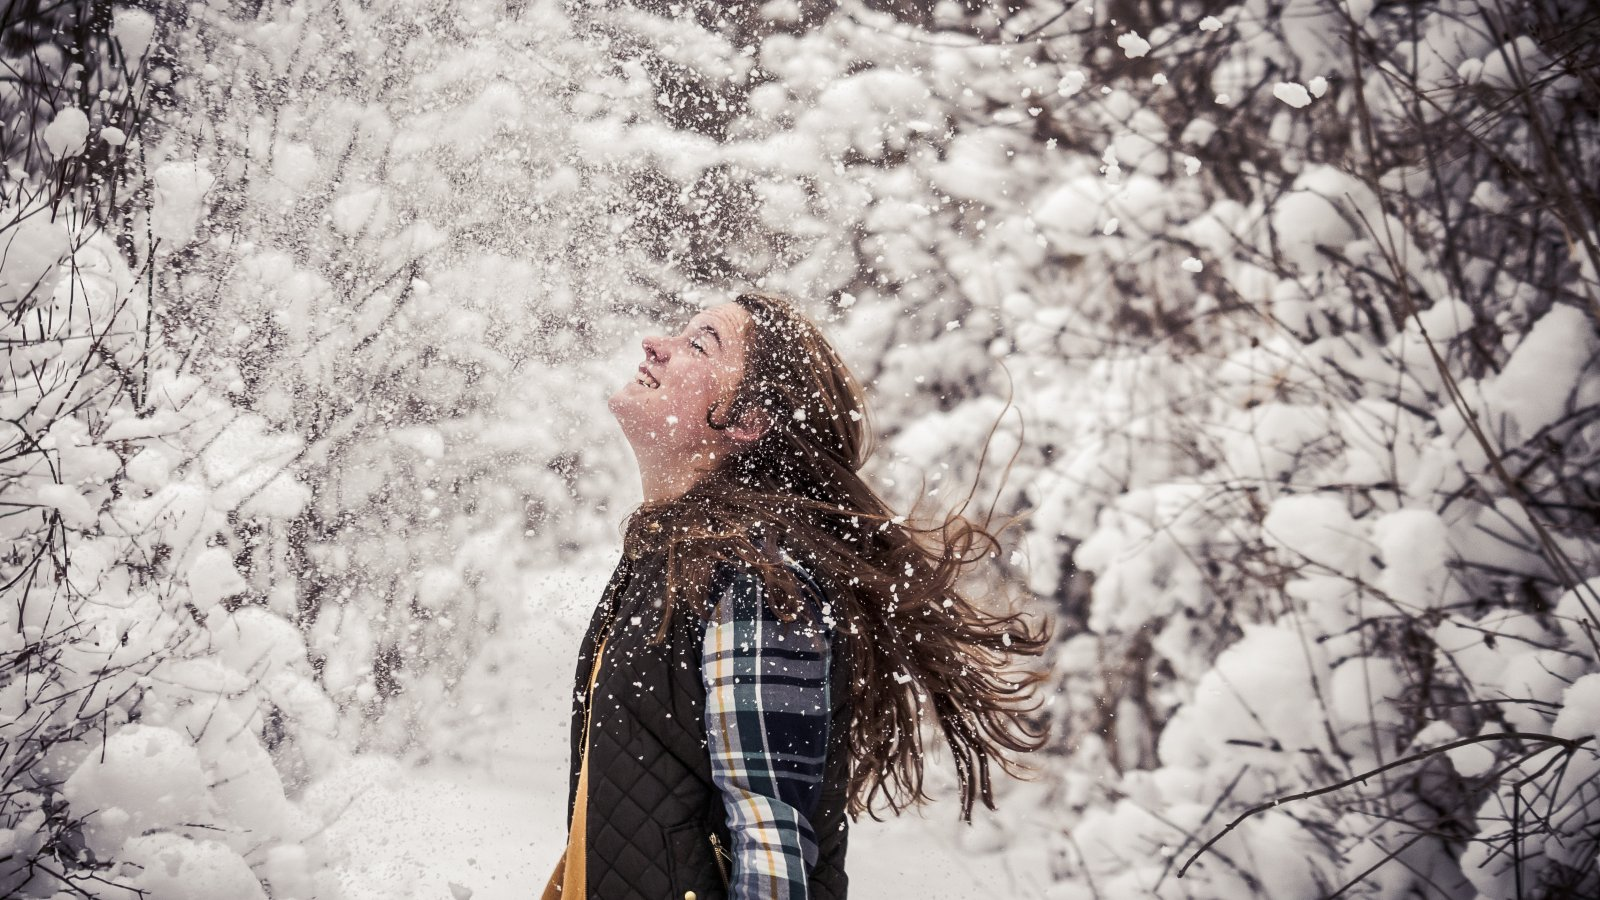 Girl smiling in the snow